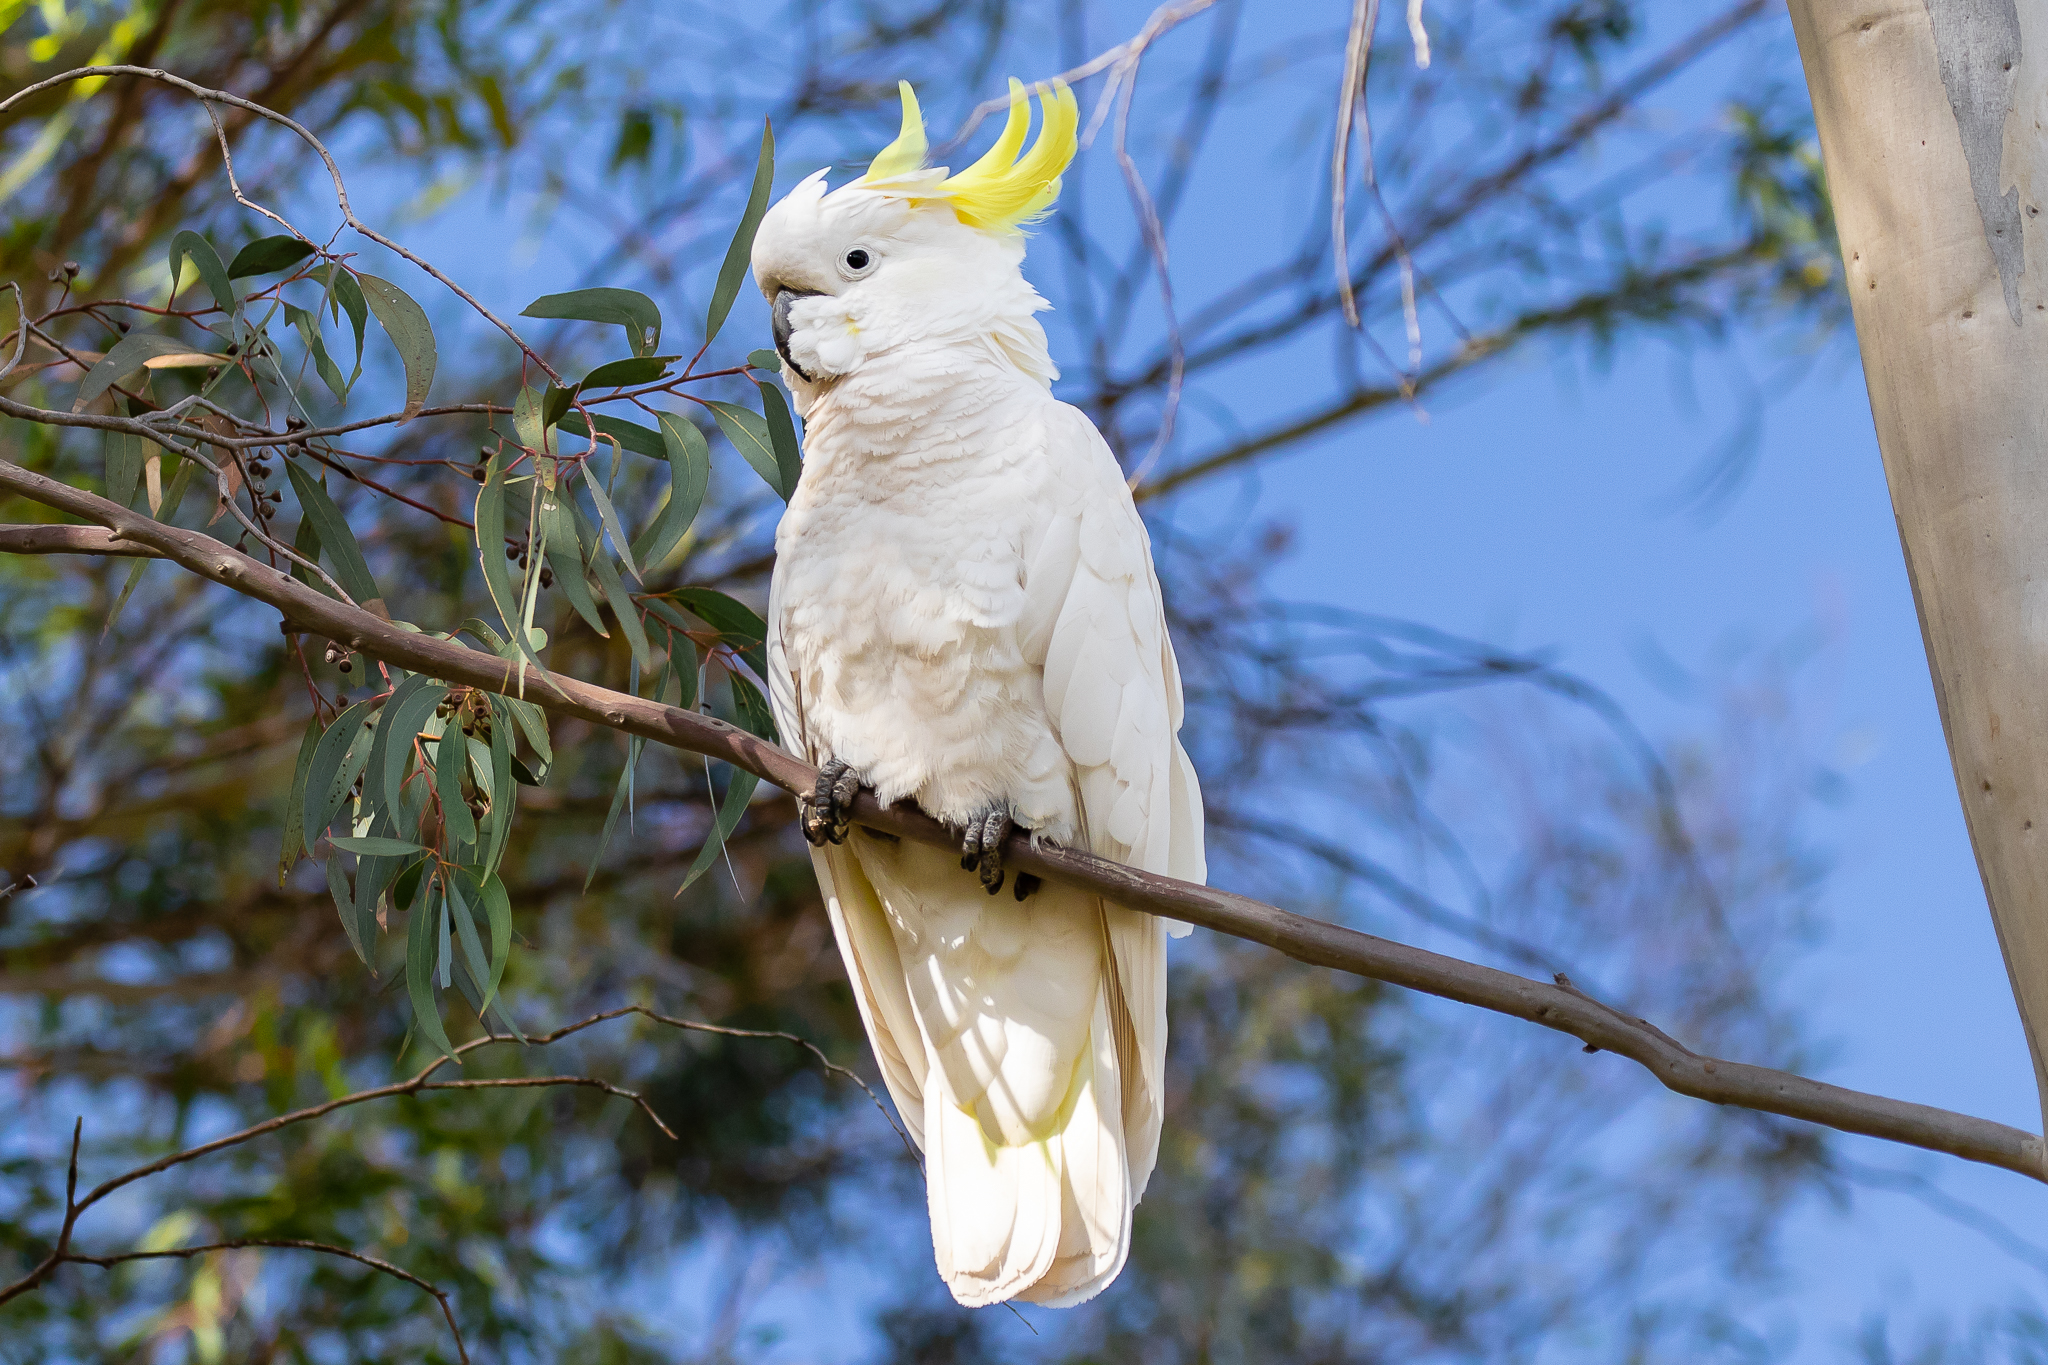 The raucous Sulphur-crested Cockatoo (50 cm) is also widely seen in Australia's northern and eastern states. Their normal diet consists of berries, seeds, nuts and roots but they also chop the end of small branches and attack wooden window panes.